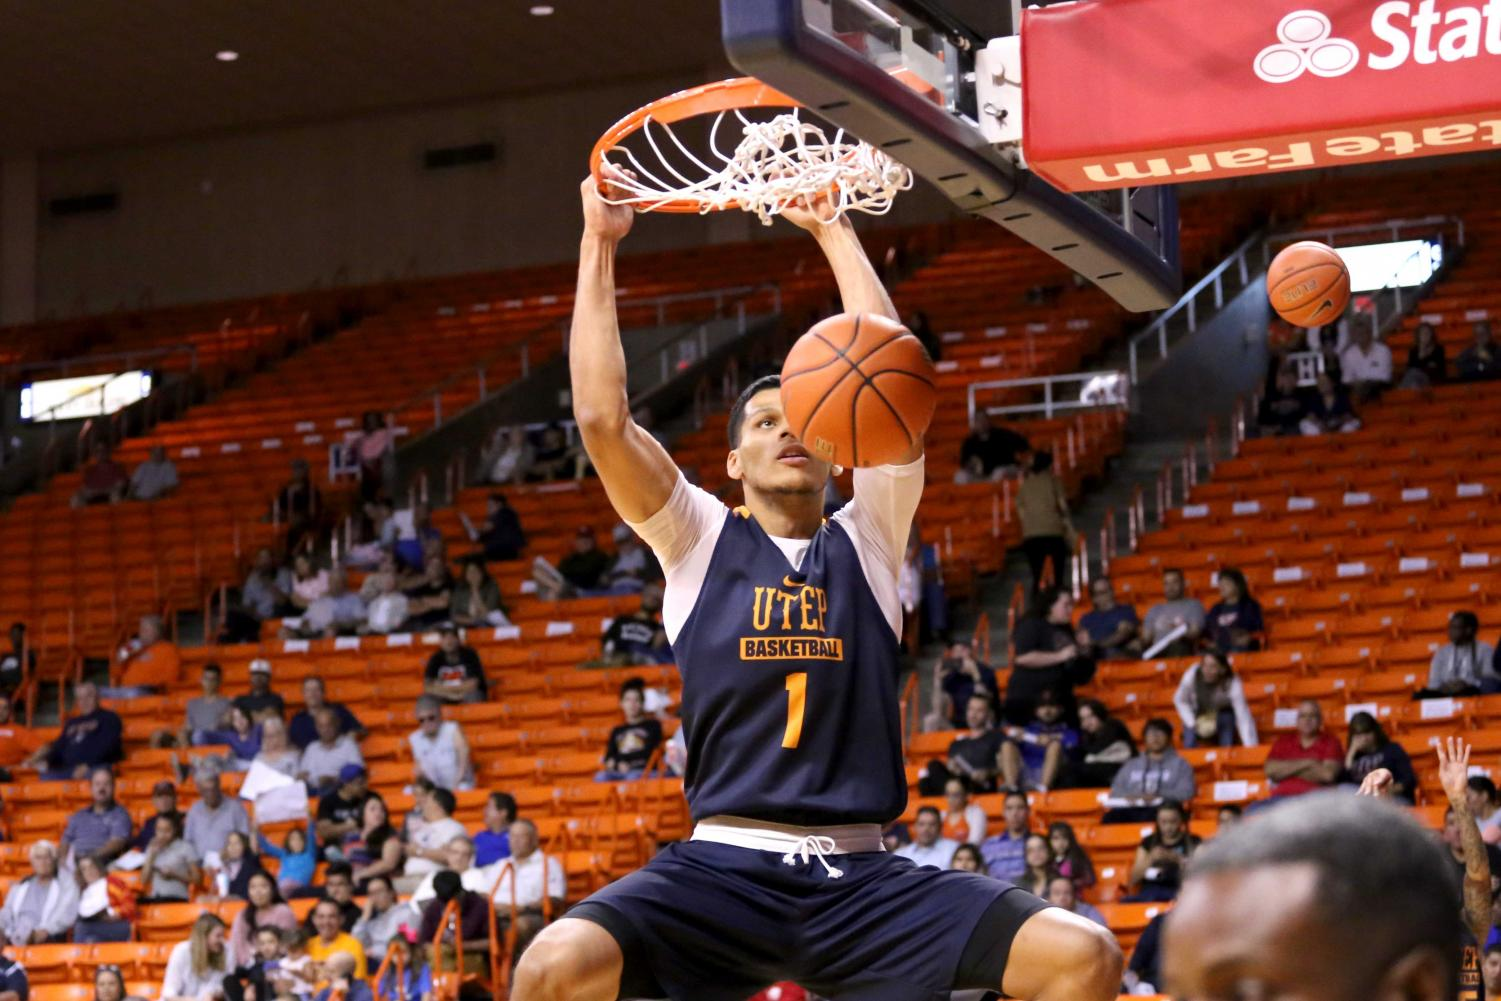 Senior+forward+Paul+Thomas+dunks+the+ball++into+the+basket+during+the+basketball+pre+season+showcase+at+the+Don+Haskins+Center+on+Wednesday%2C+Oct.+10.+